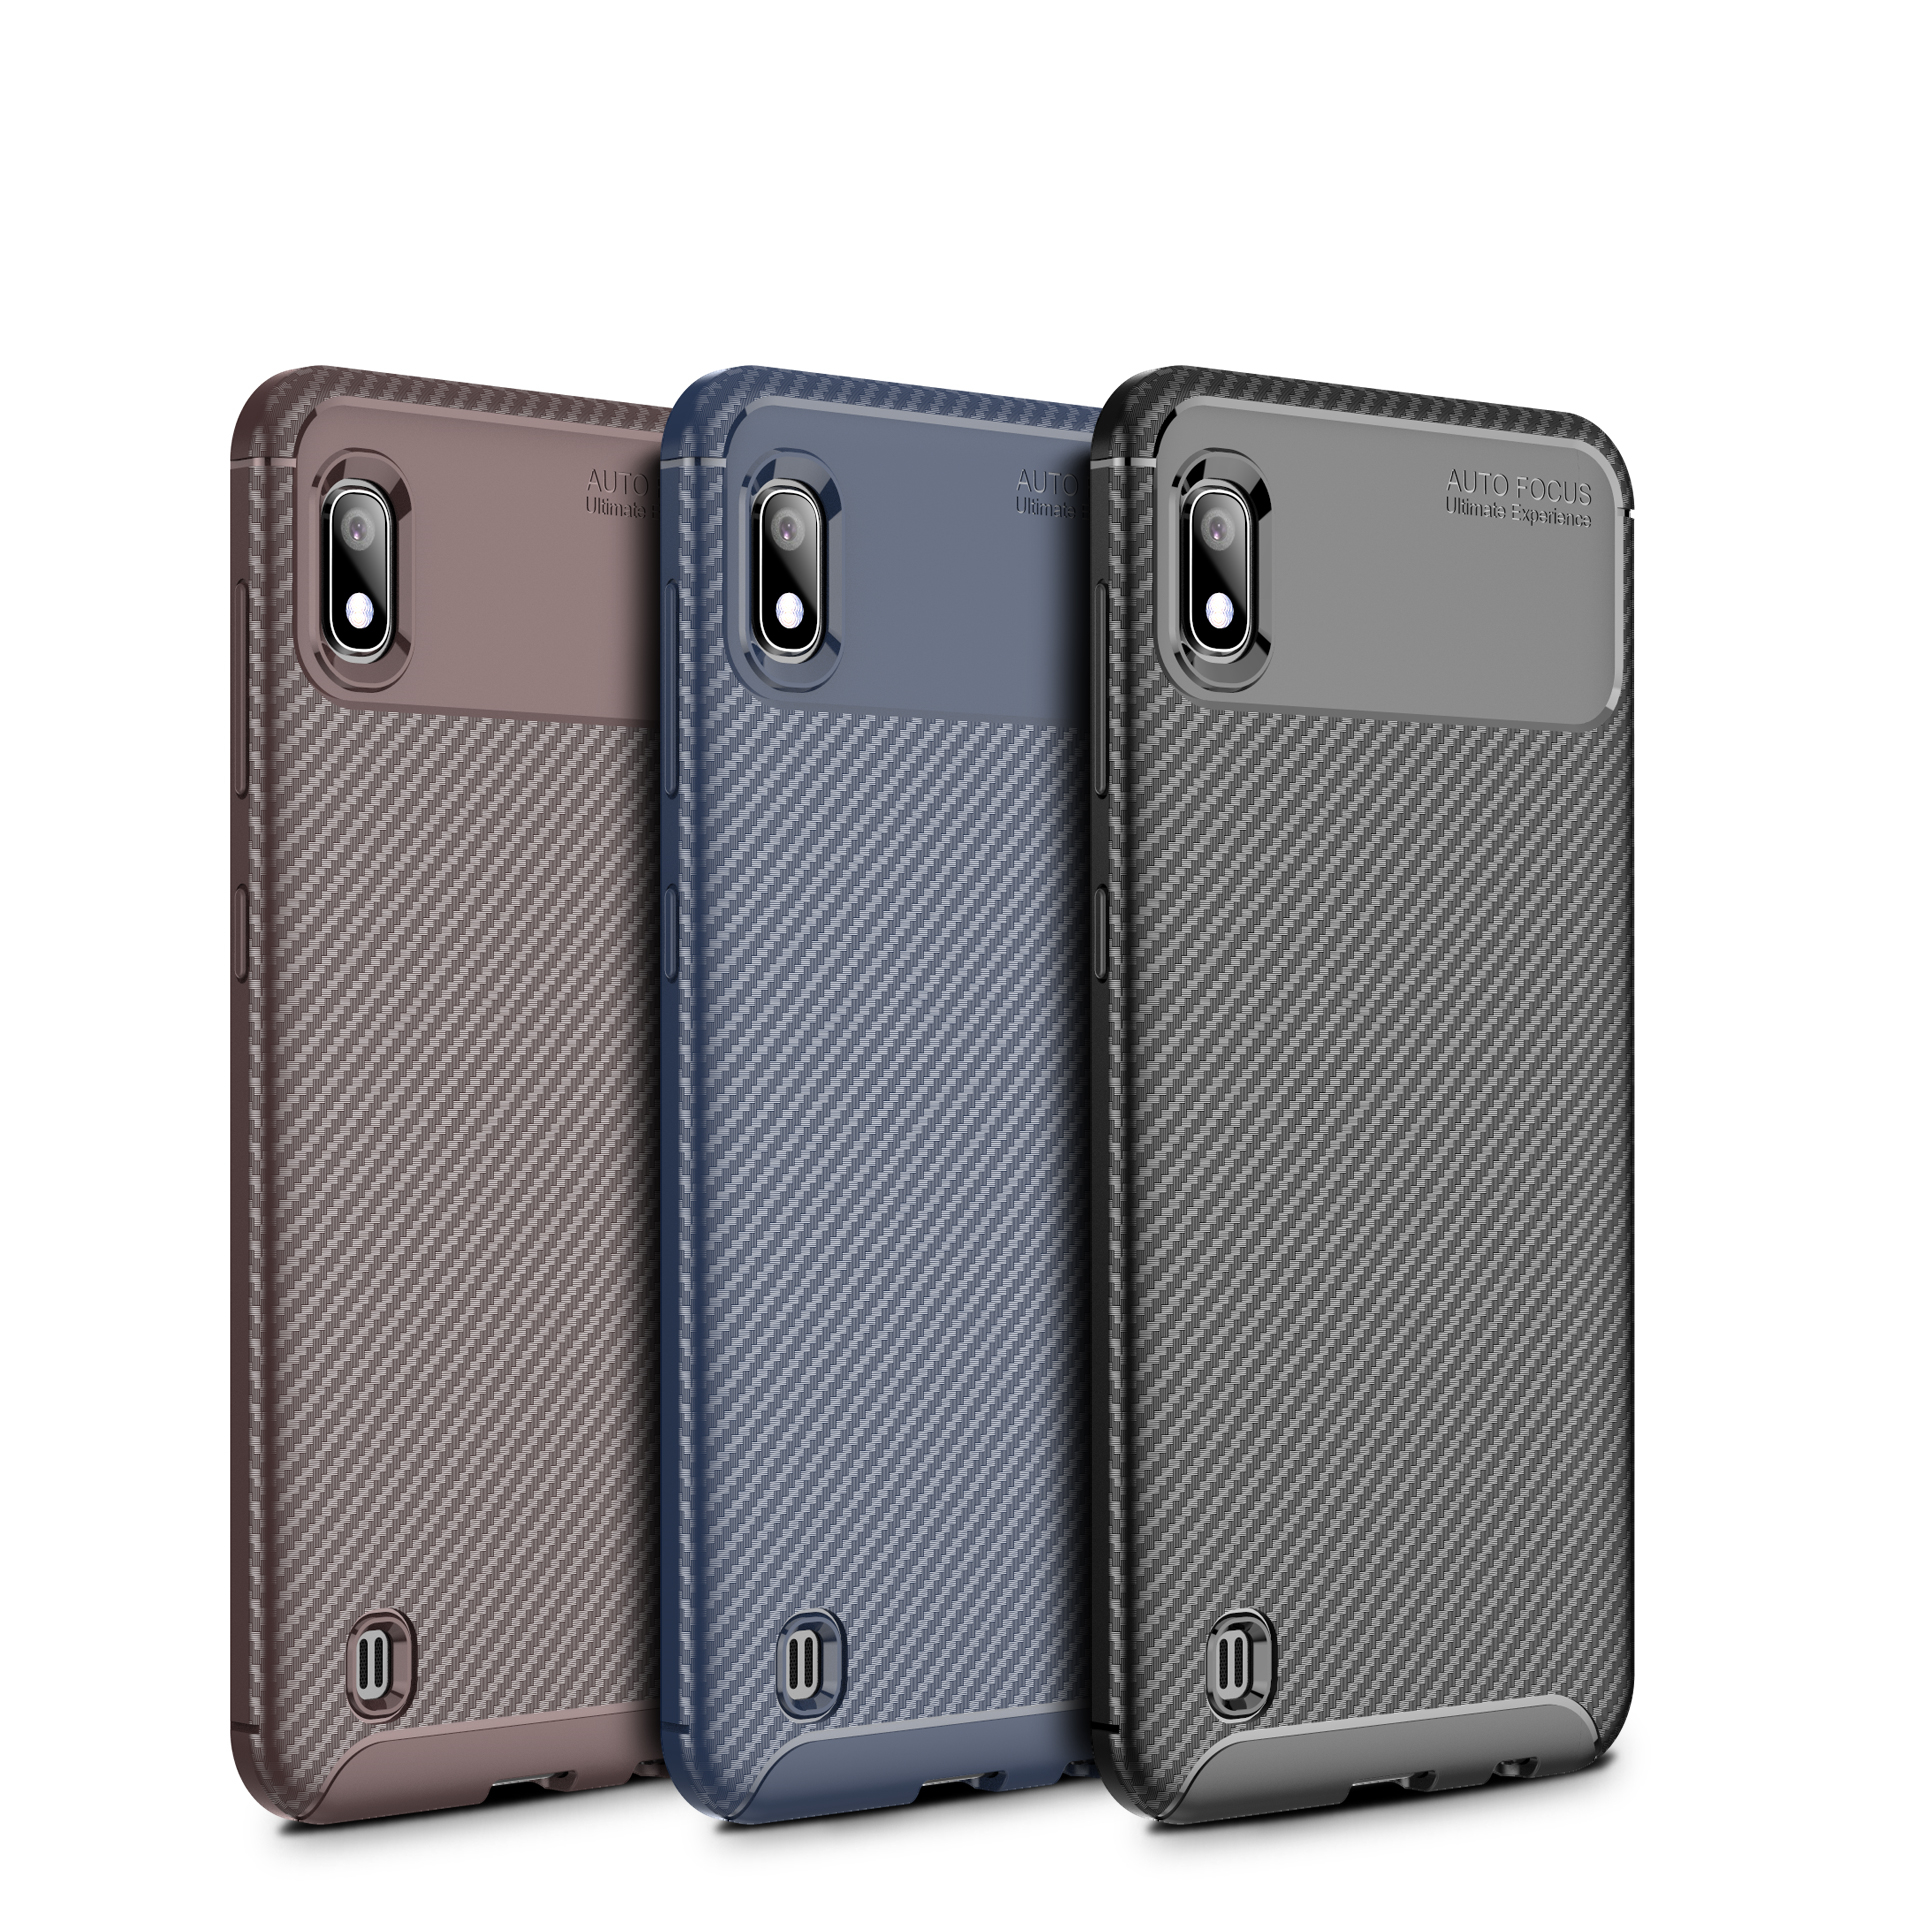 DOYERS Original Hight Quality Beetle case for Samsung galaxy <strong>A10</strong> cover for Ultrathin Soft TPU Carbon Fiber Phone Cover <strong>A10</strong>